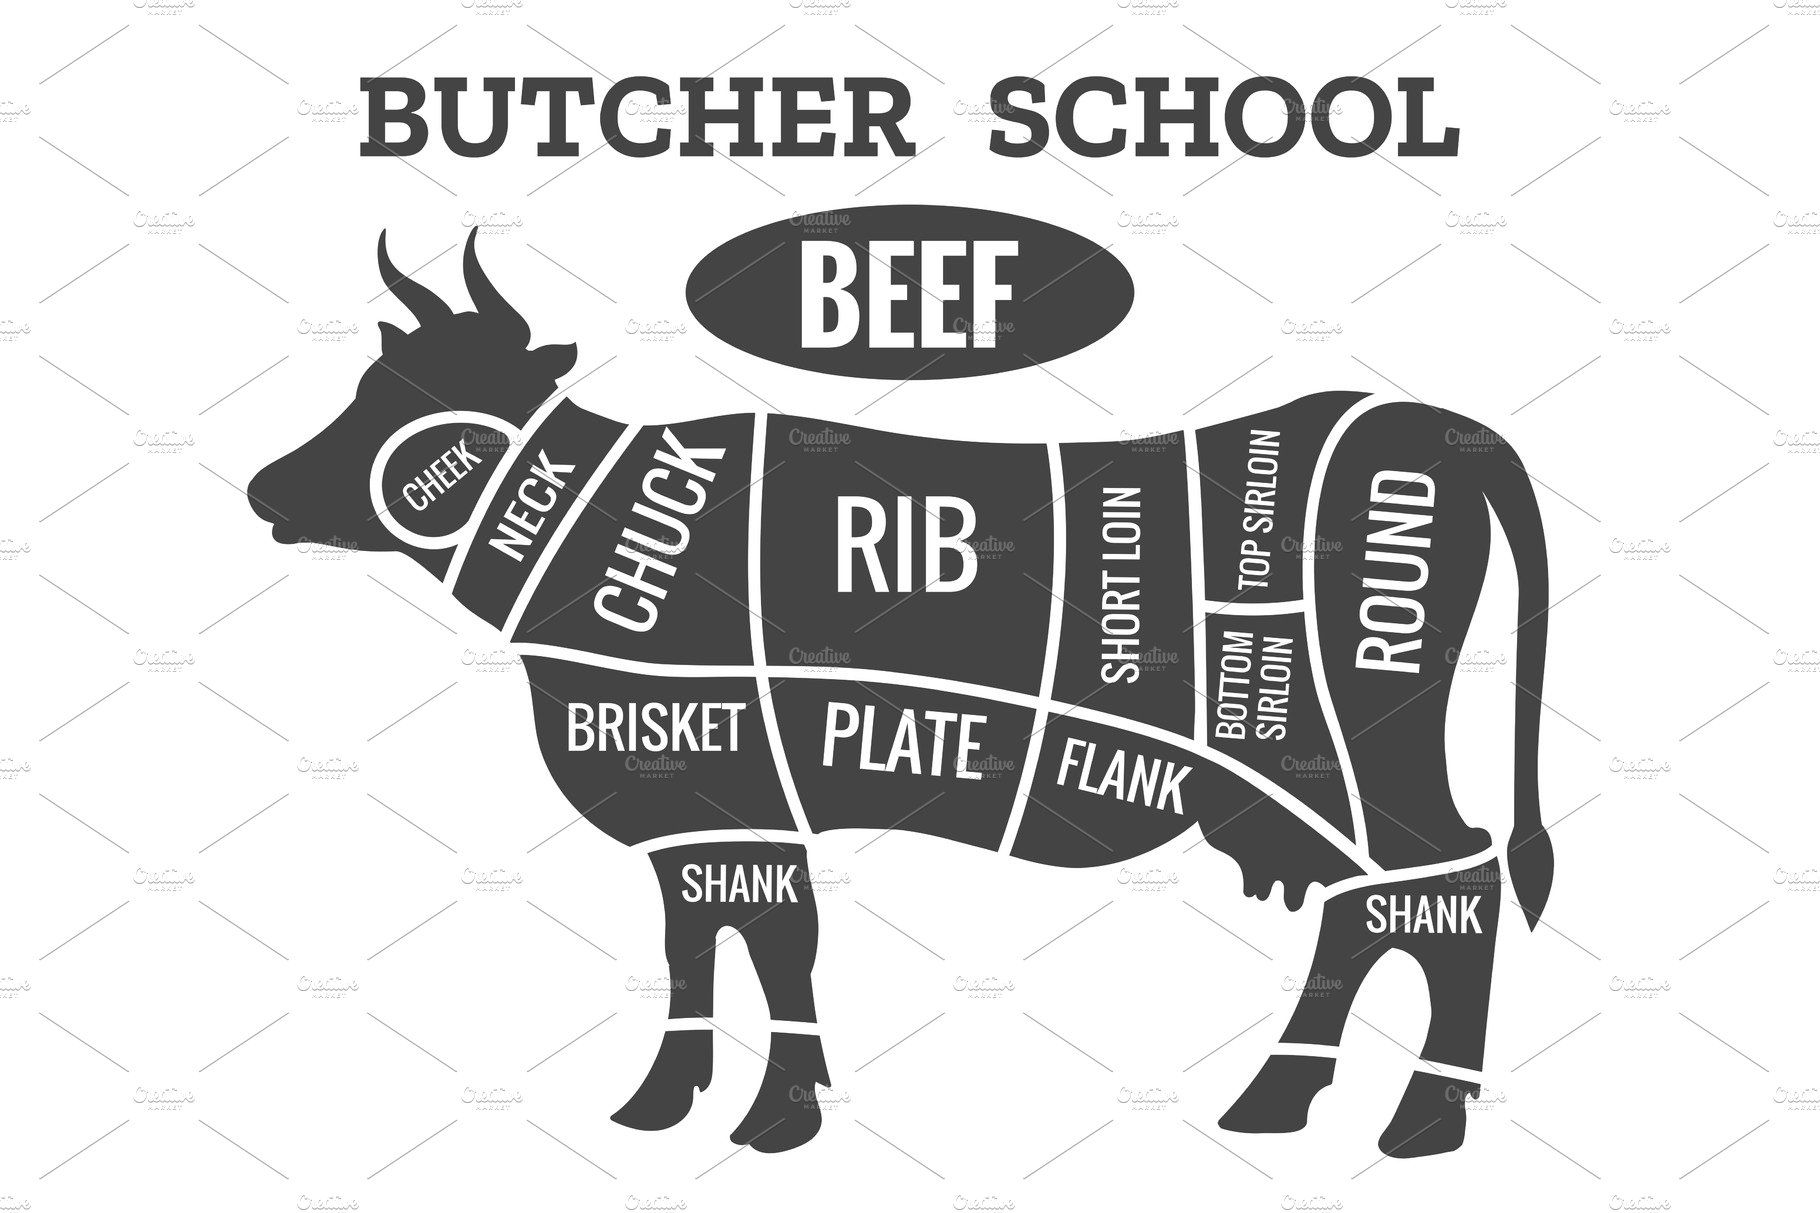 Cow Butcher Diagram Butcher Diagram Butcher Restaurant Poster